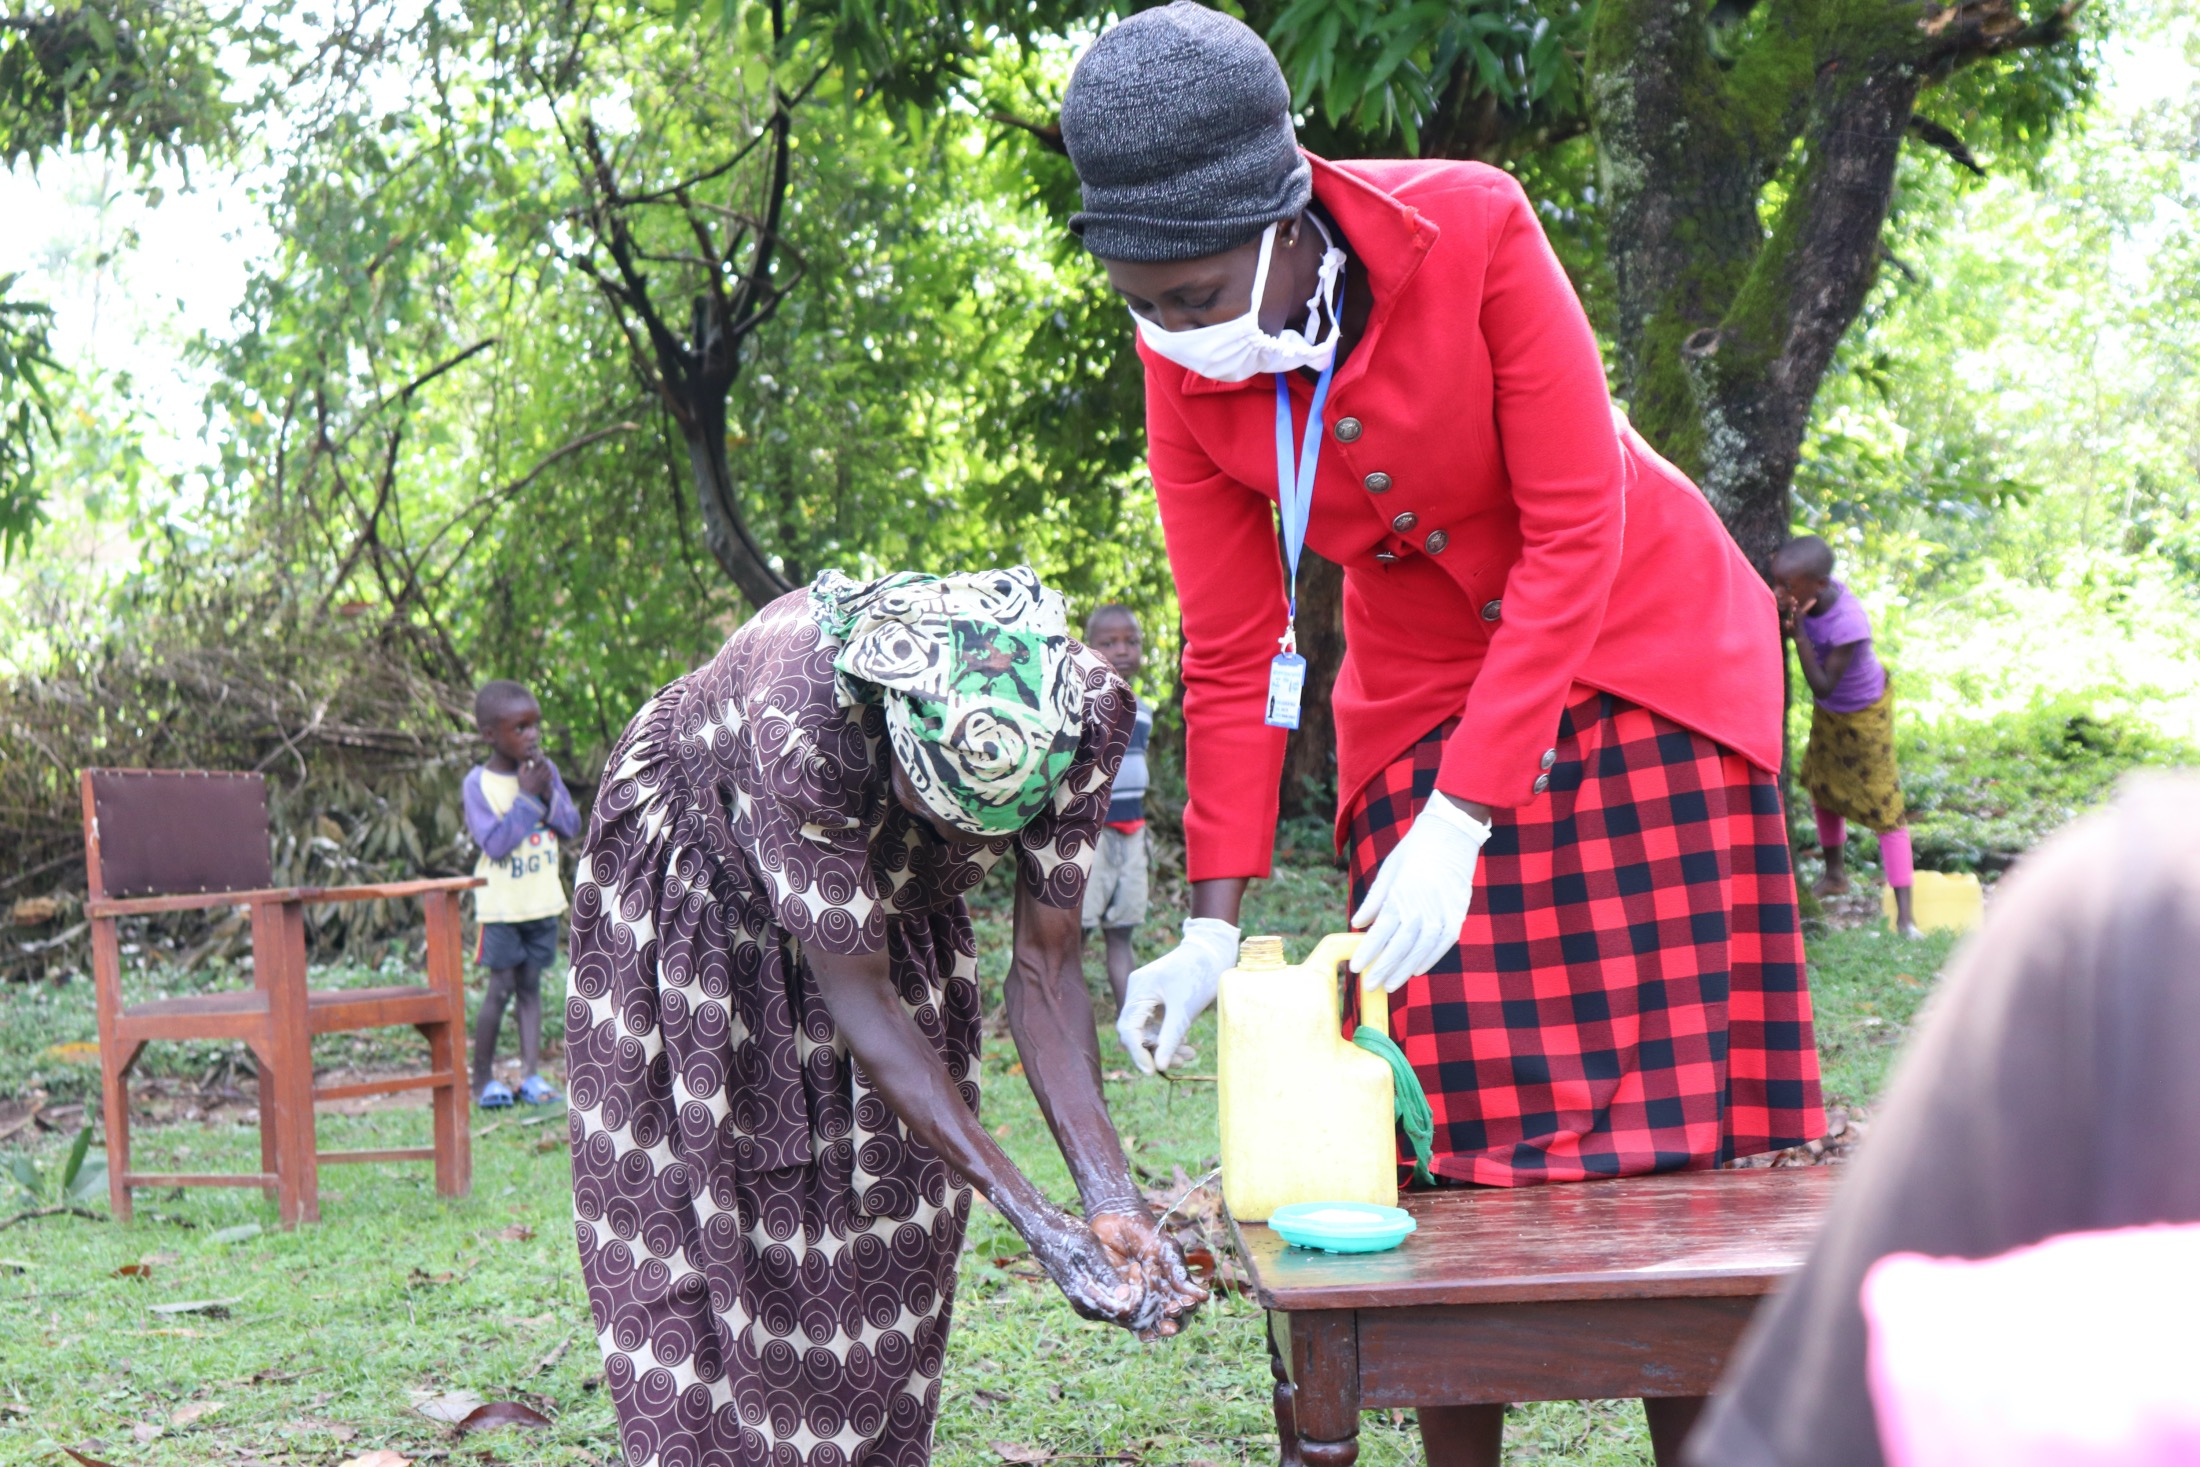 The Water Project : 6-covid19-kenya18145-trainer-shigali-helps-a-woman-wash-her-hands-with-a-leaky-tin